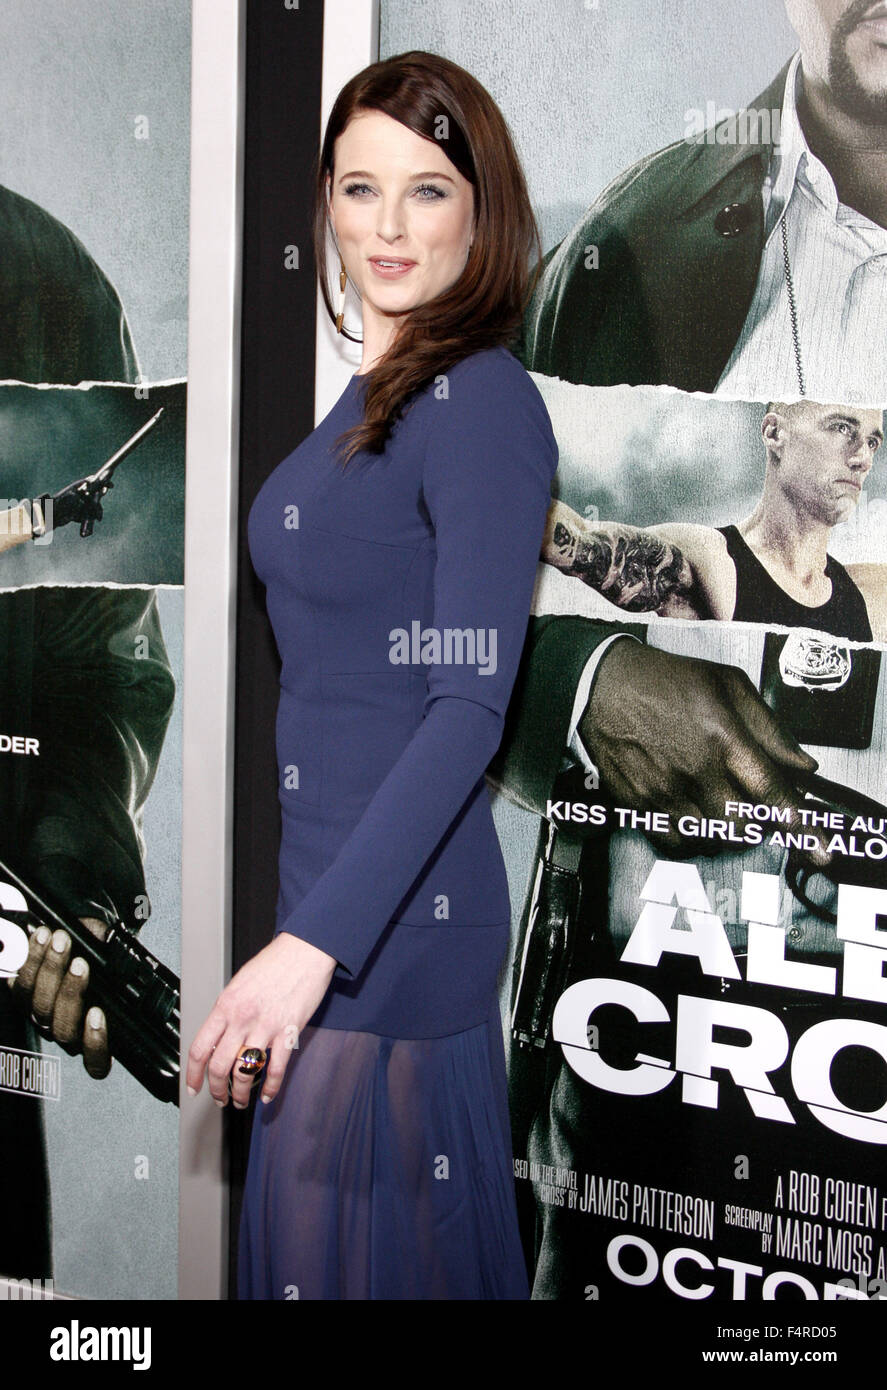 Rachel Nichols At The Los Angeles Premiere Of Alex Cross Held At The Arclight Cinemas In Los Angeles Usa On October 15 2012